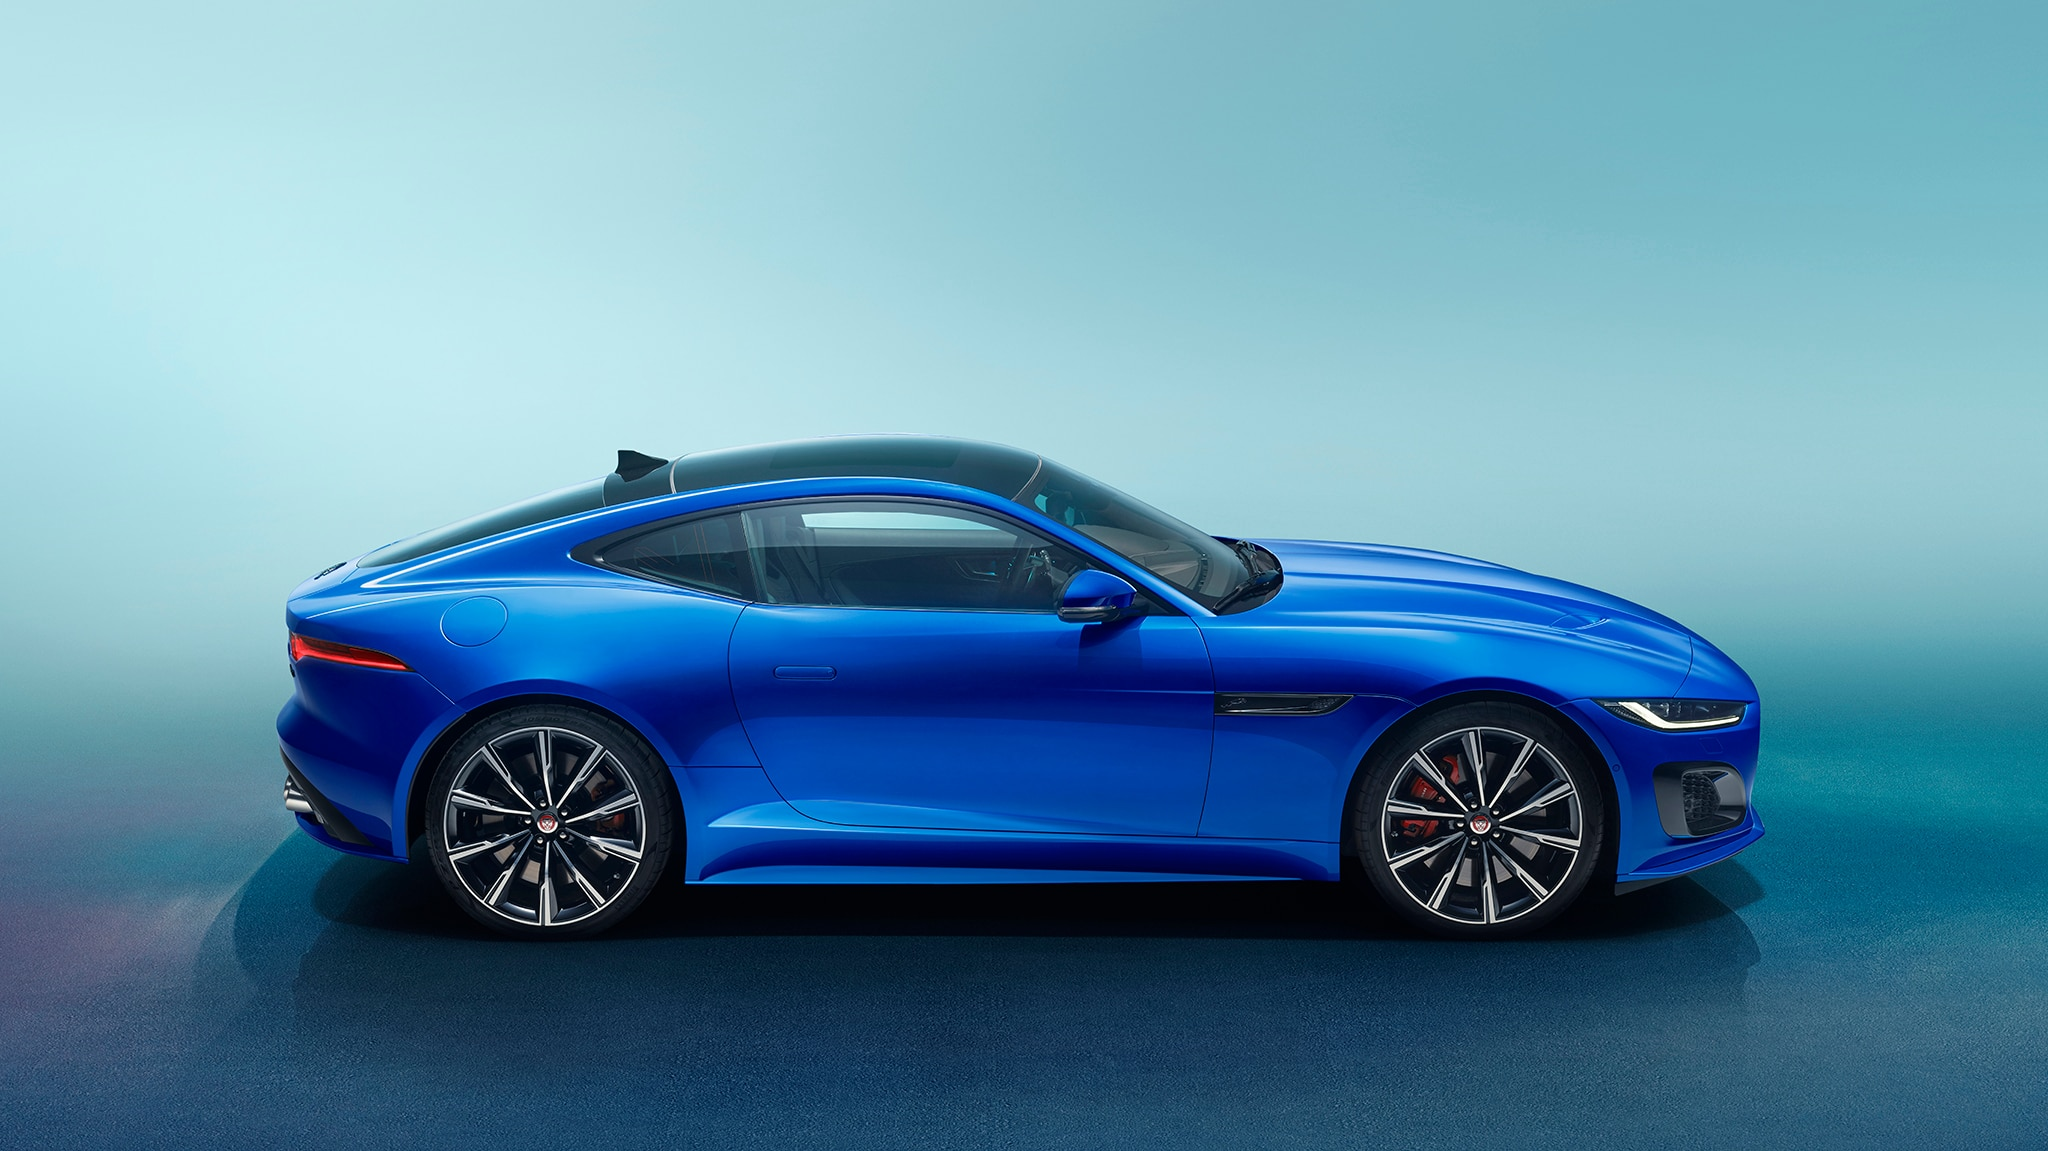 2021 Jaguar F-Type: Updated Look + More Power - Automobile